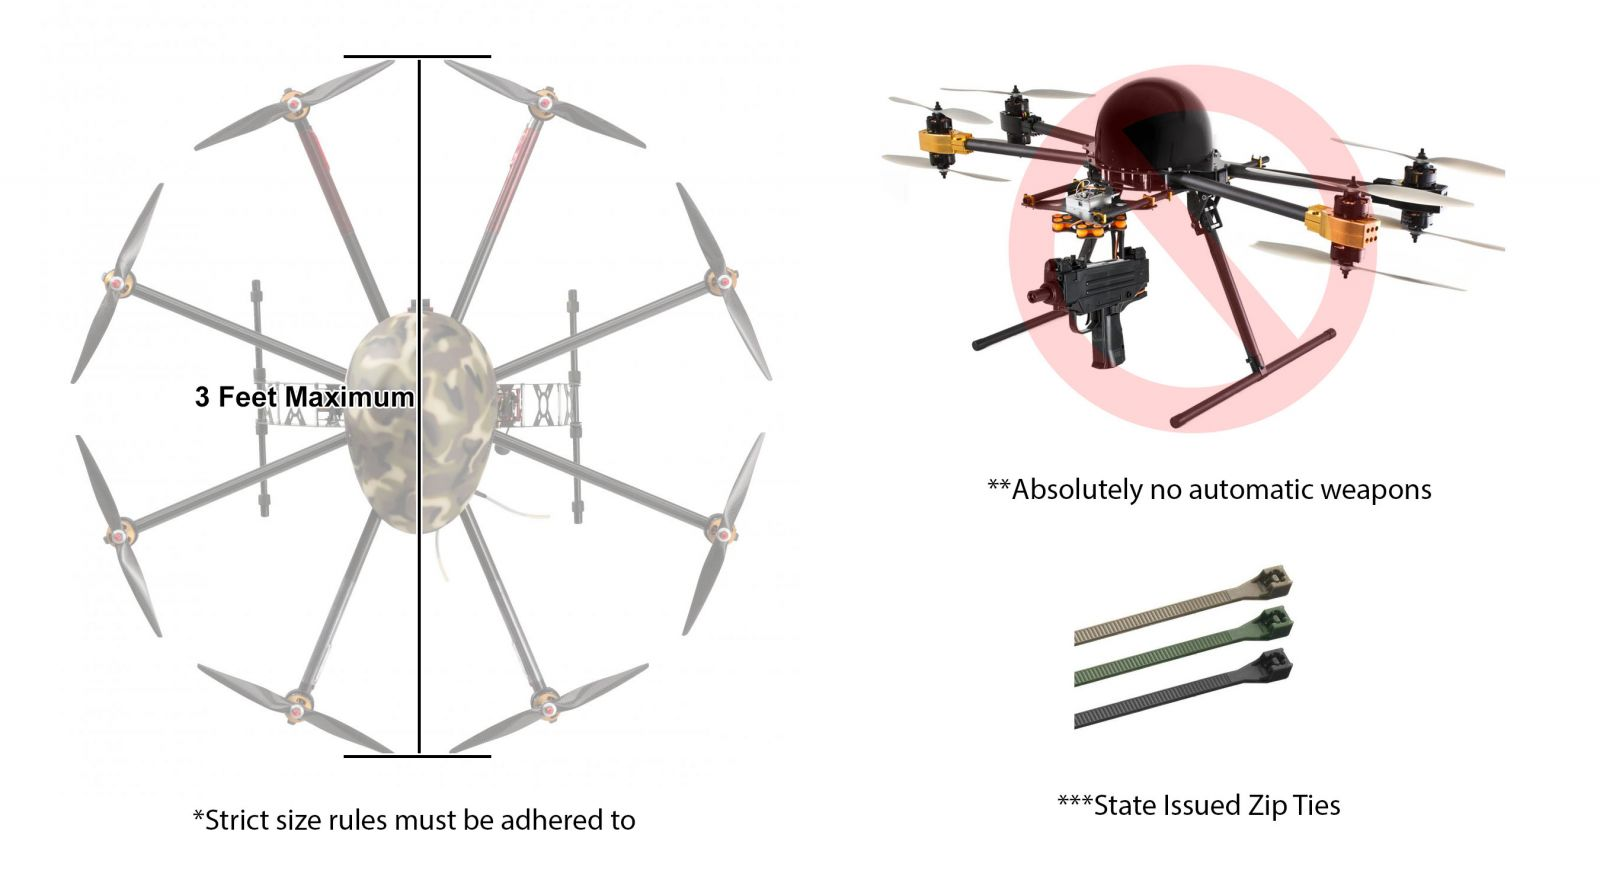 Overview of Approved Drone Rules